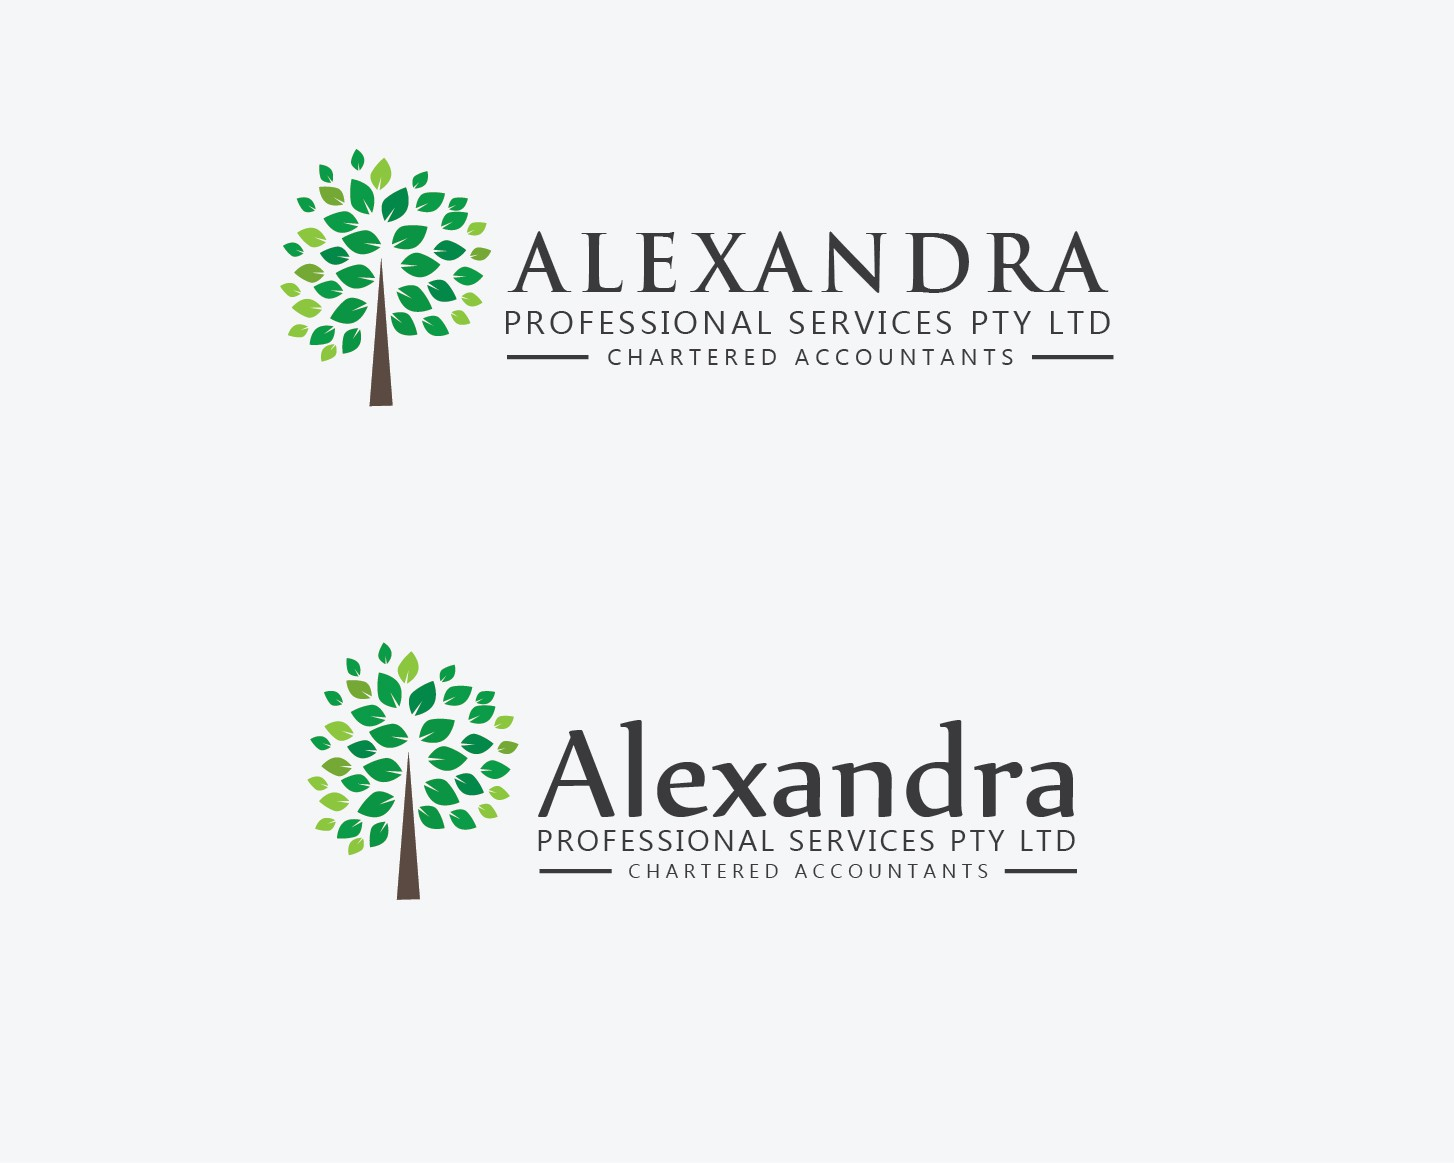 Help Alexandra Professional Services Pty Ltd - Chartered Accountants with a new logo and business card